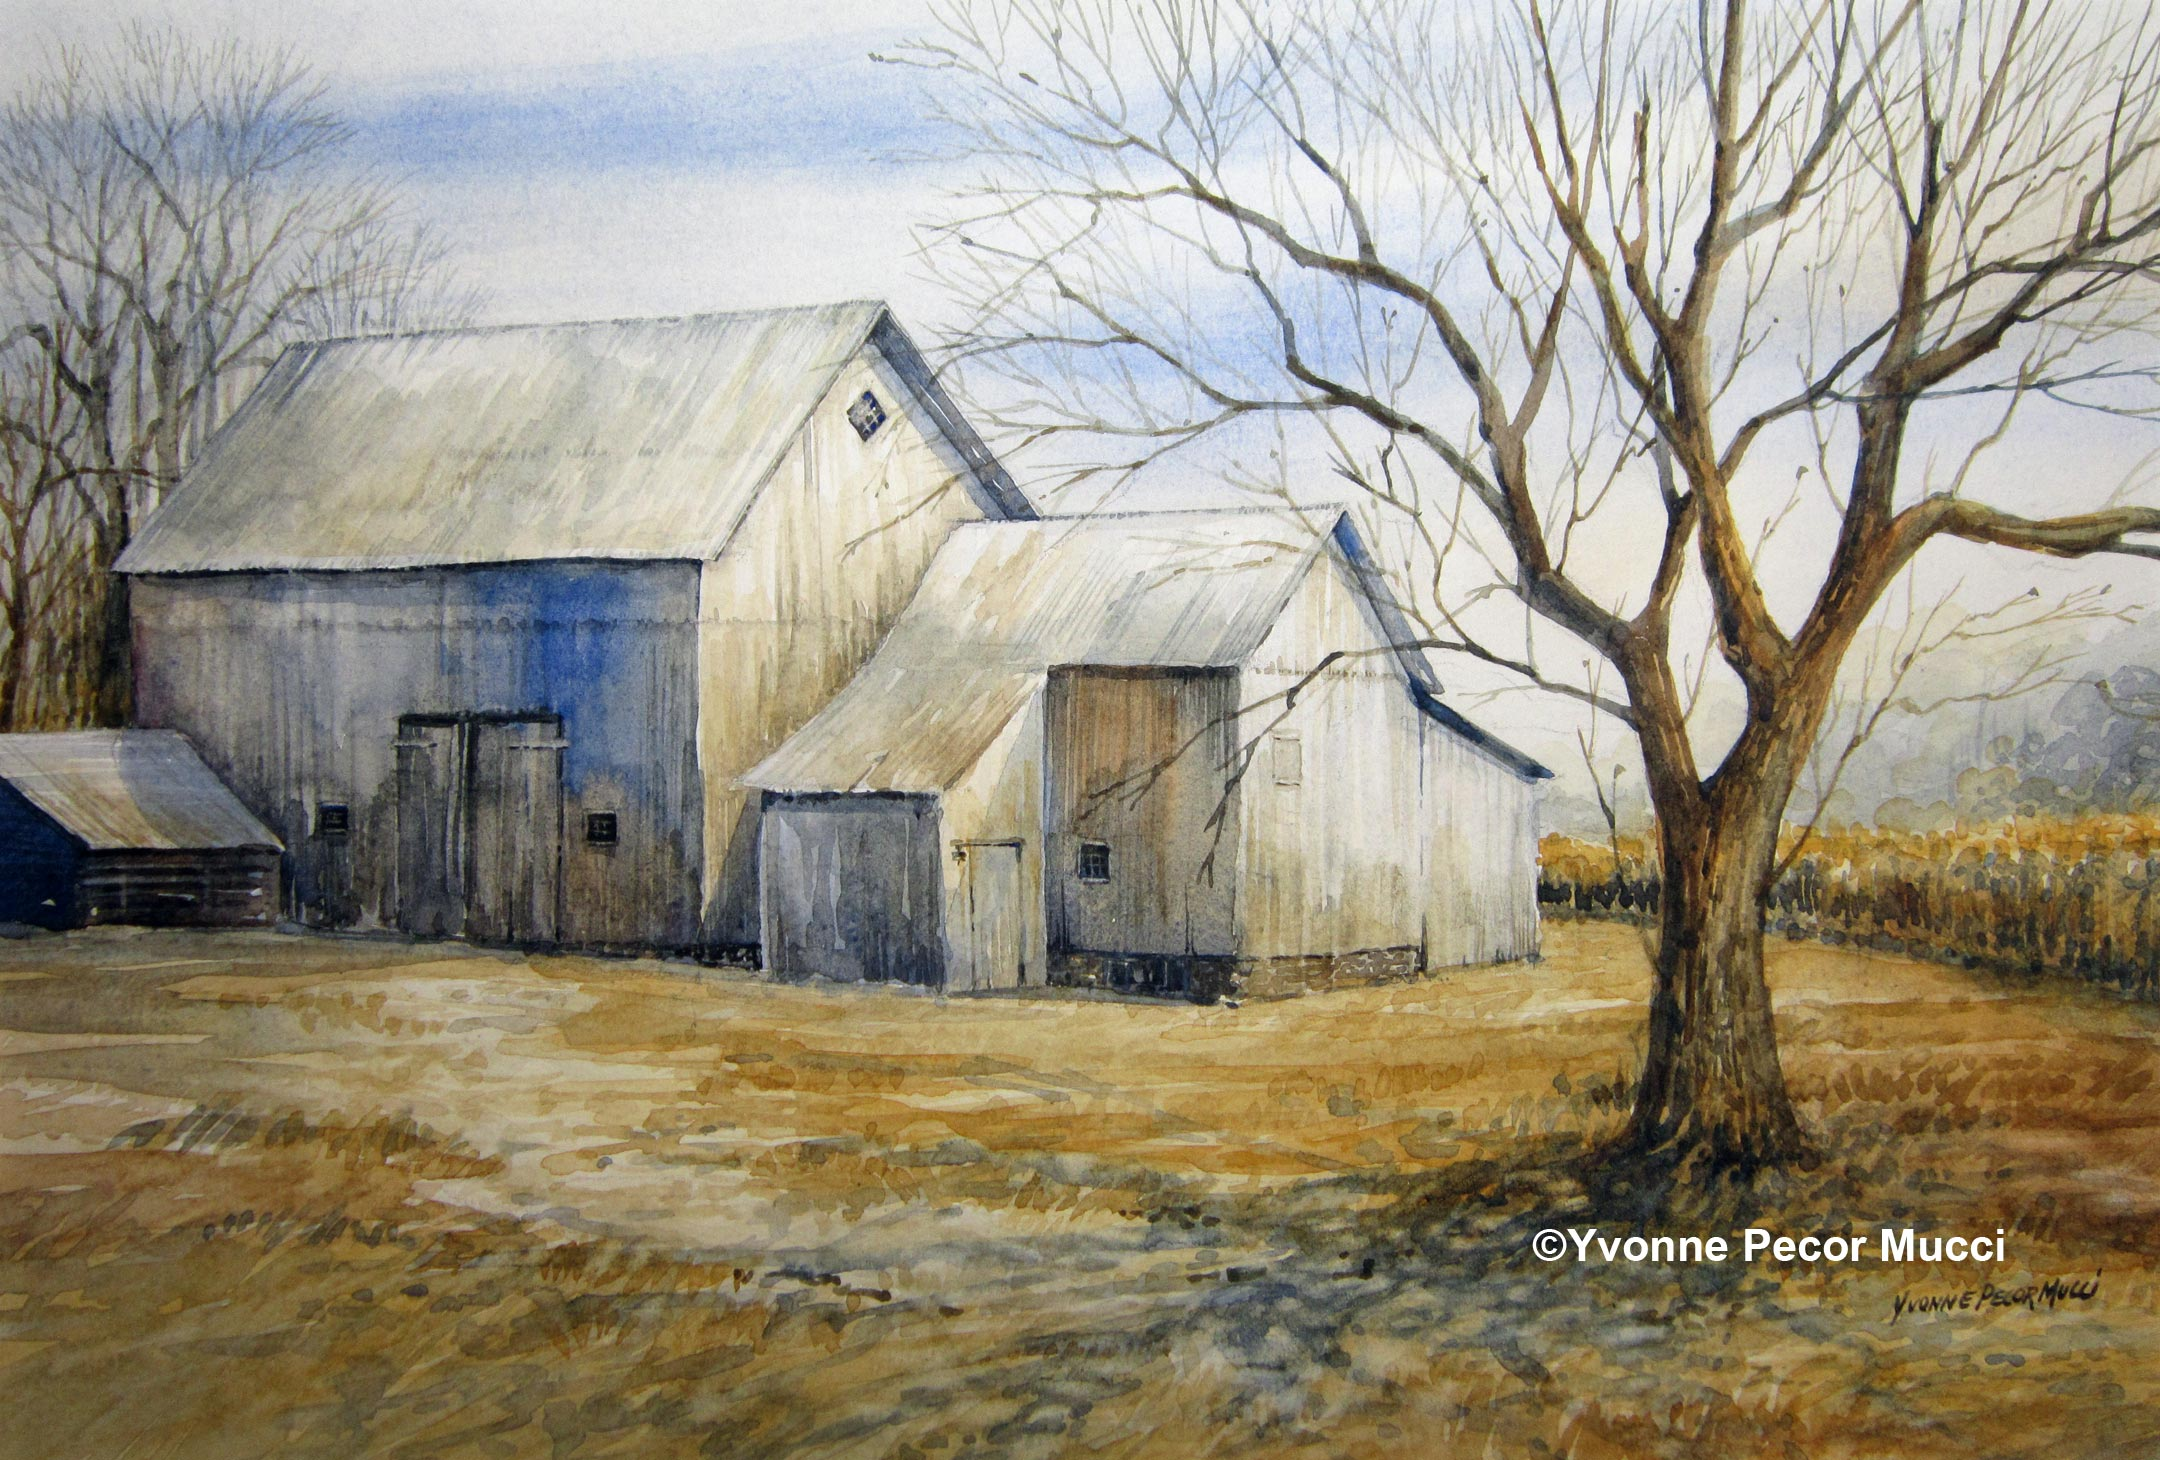 Waiting for Spring Watercolor by Yvonne Pecor Mucci